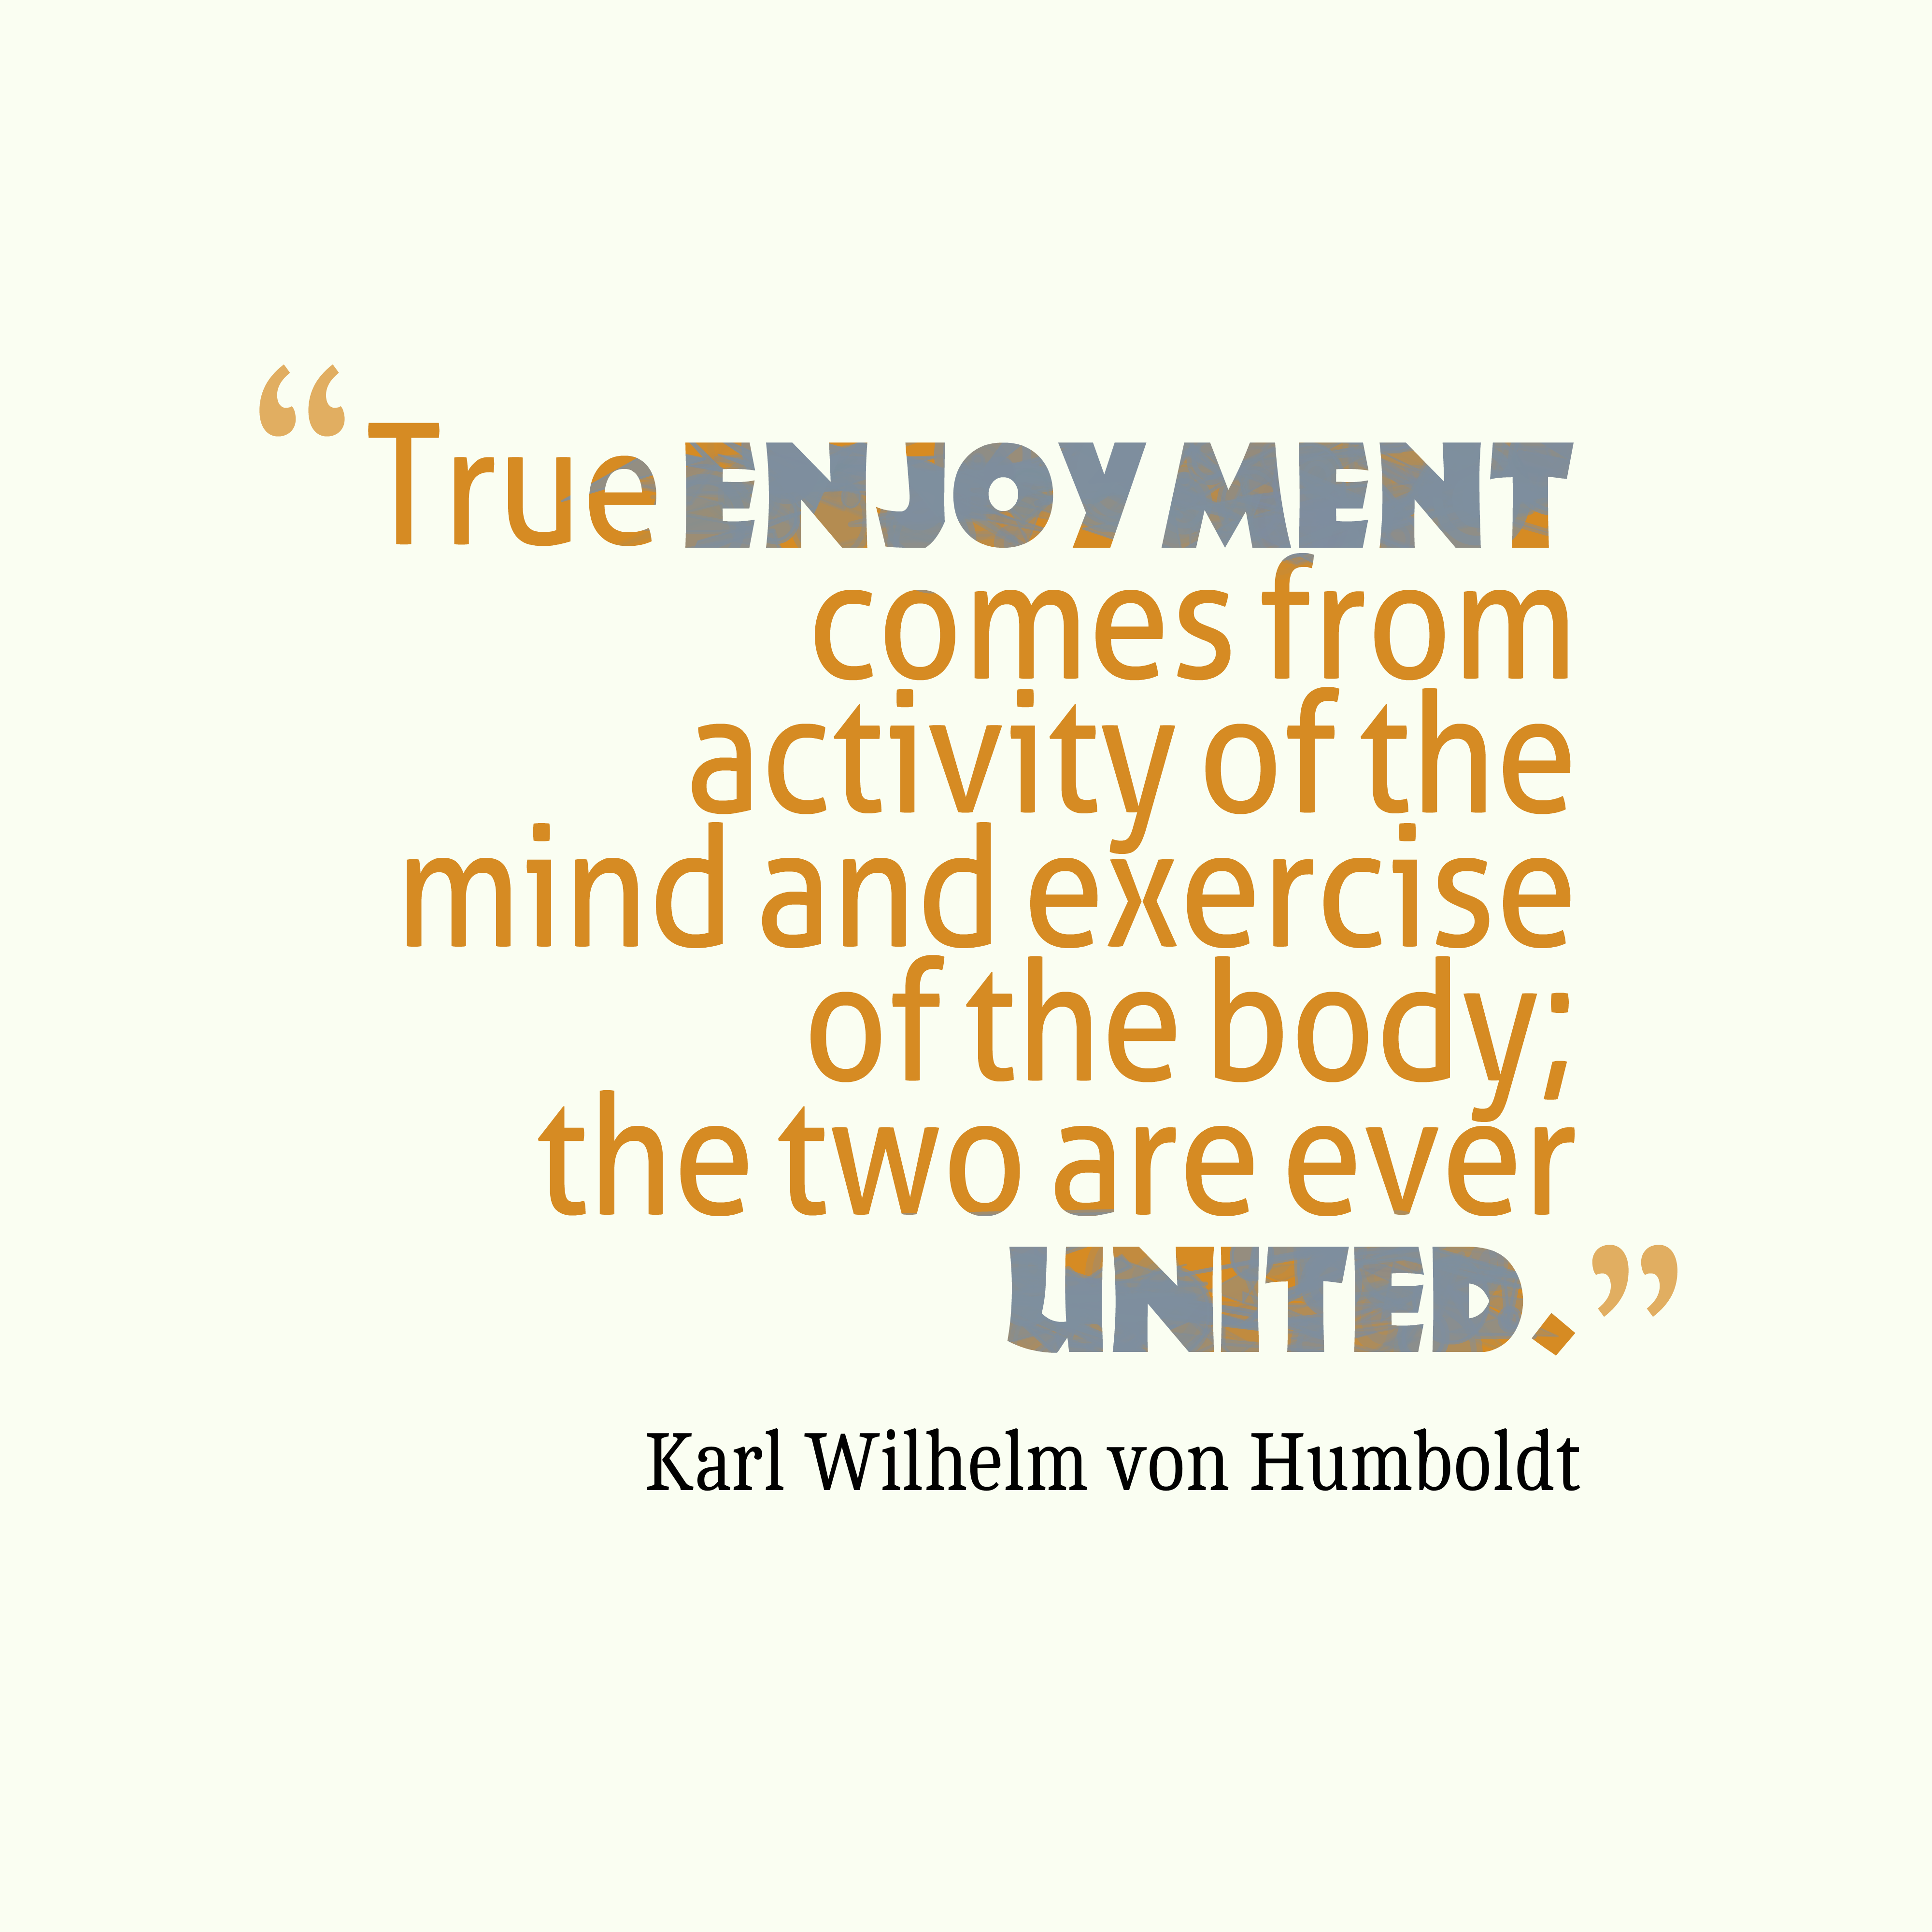 Quotes image of True enjoyment comes from activity of the mind and exercise of the body; the two are ever united.